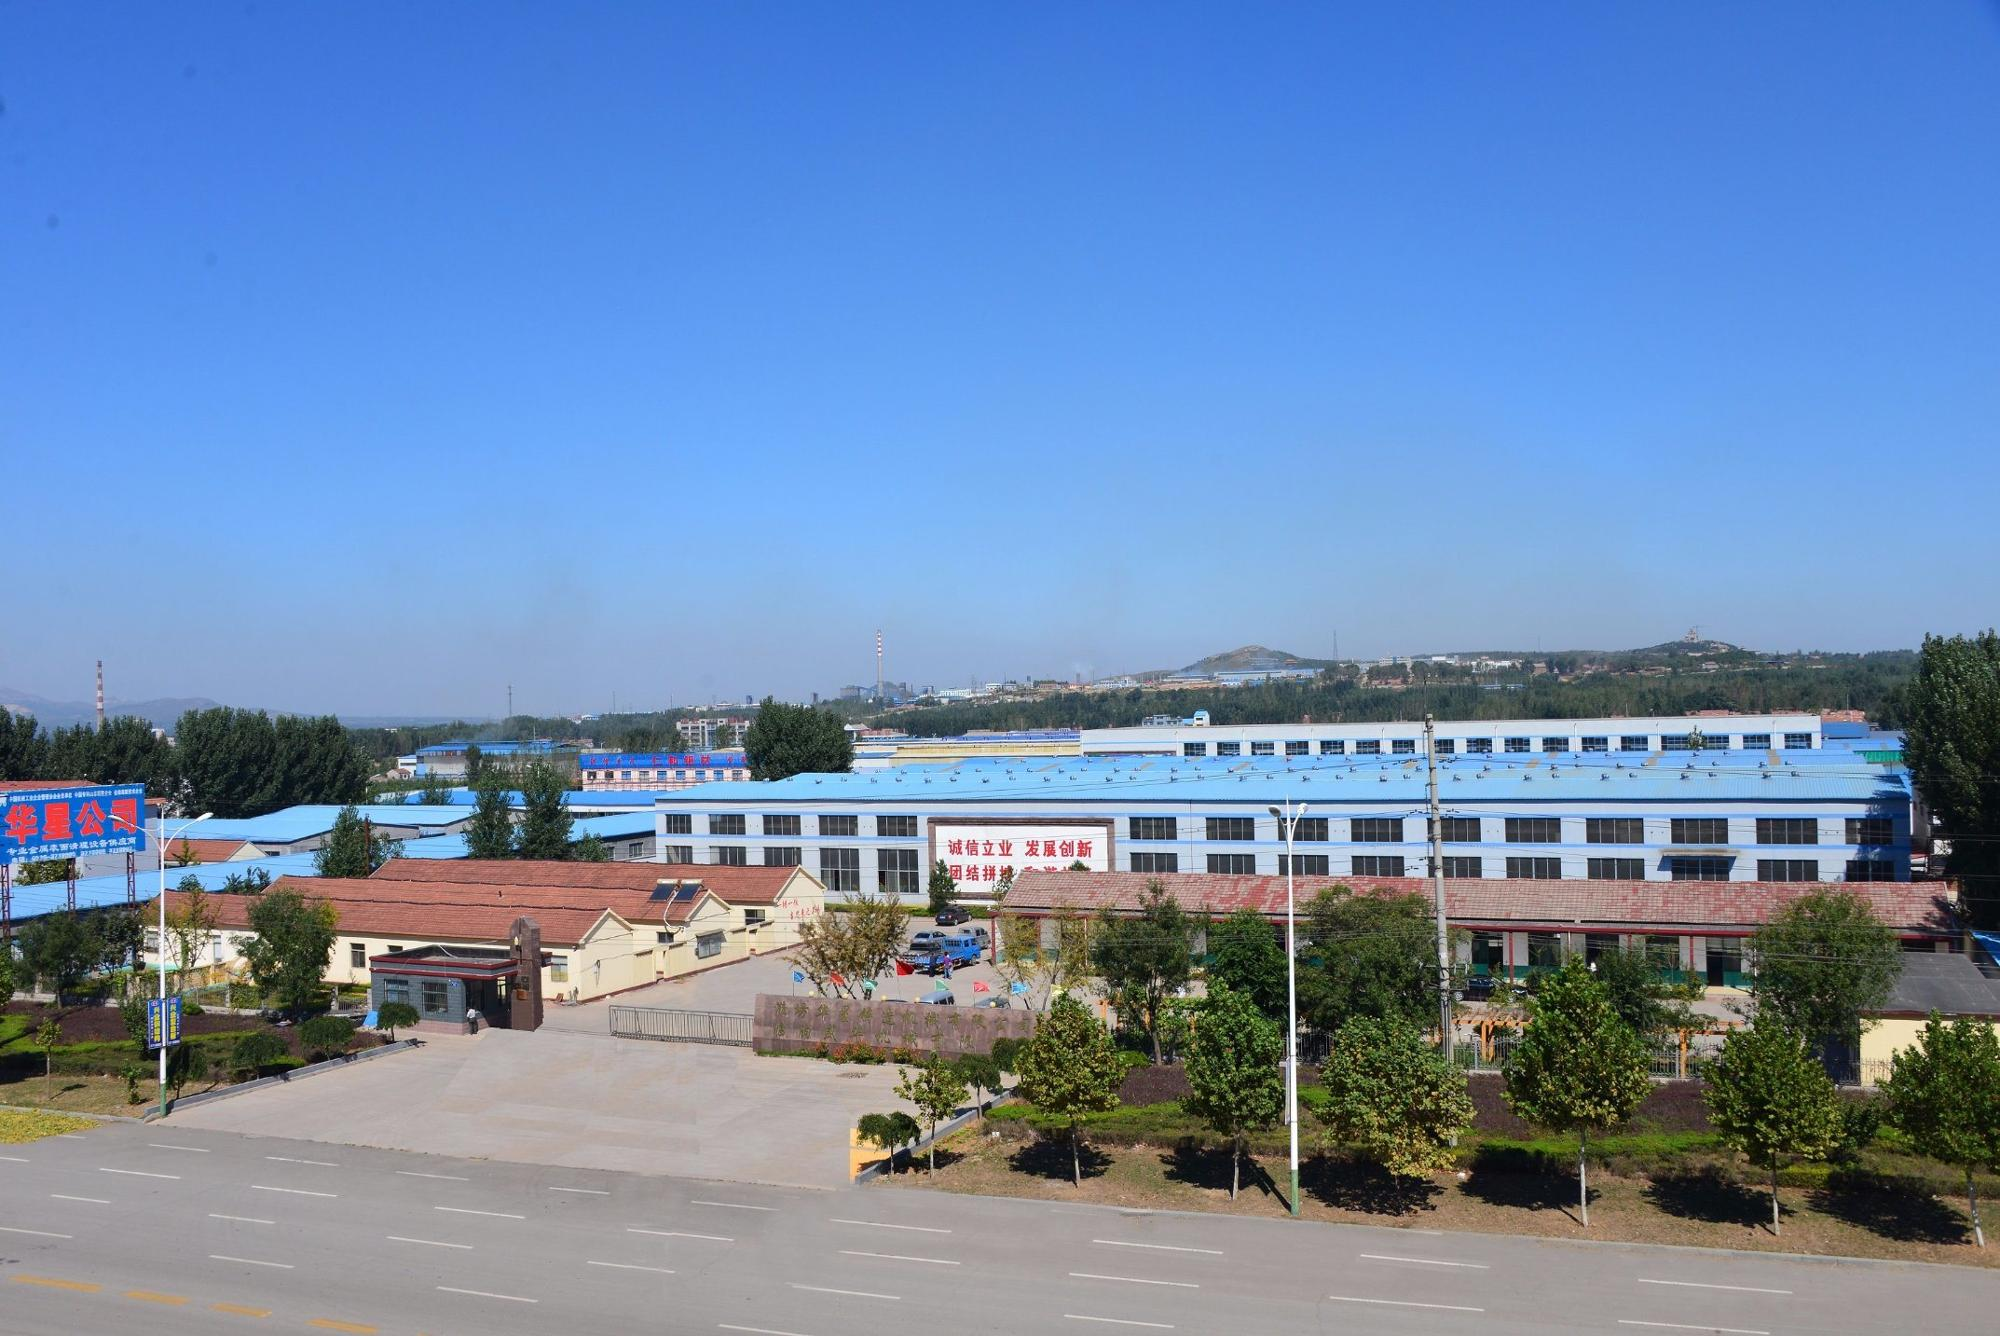 Panorama of the company